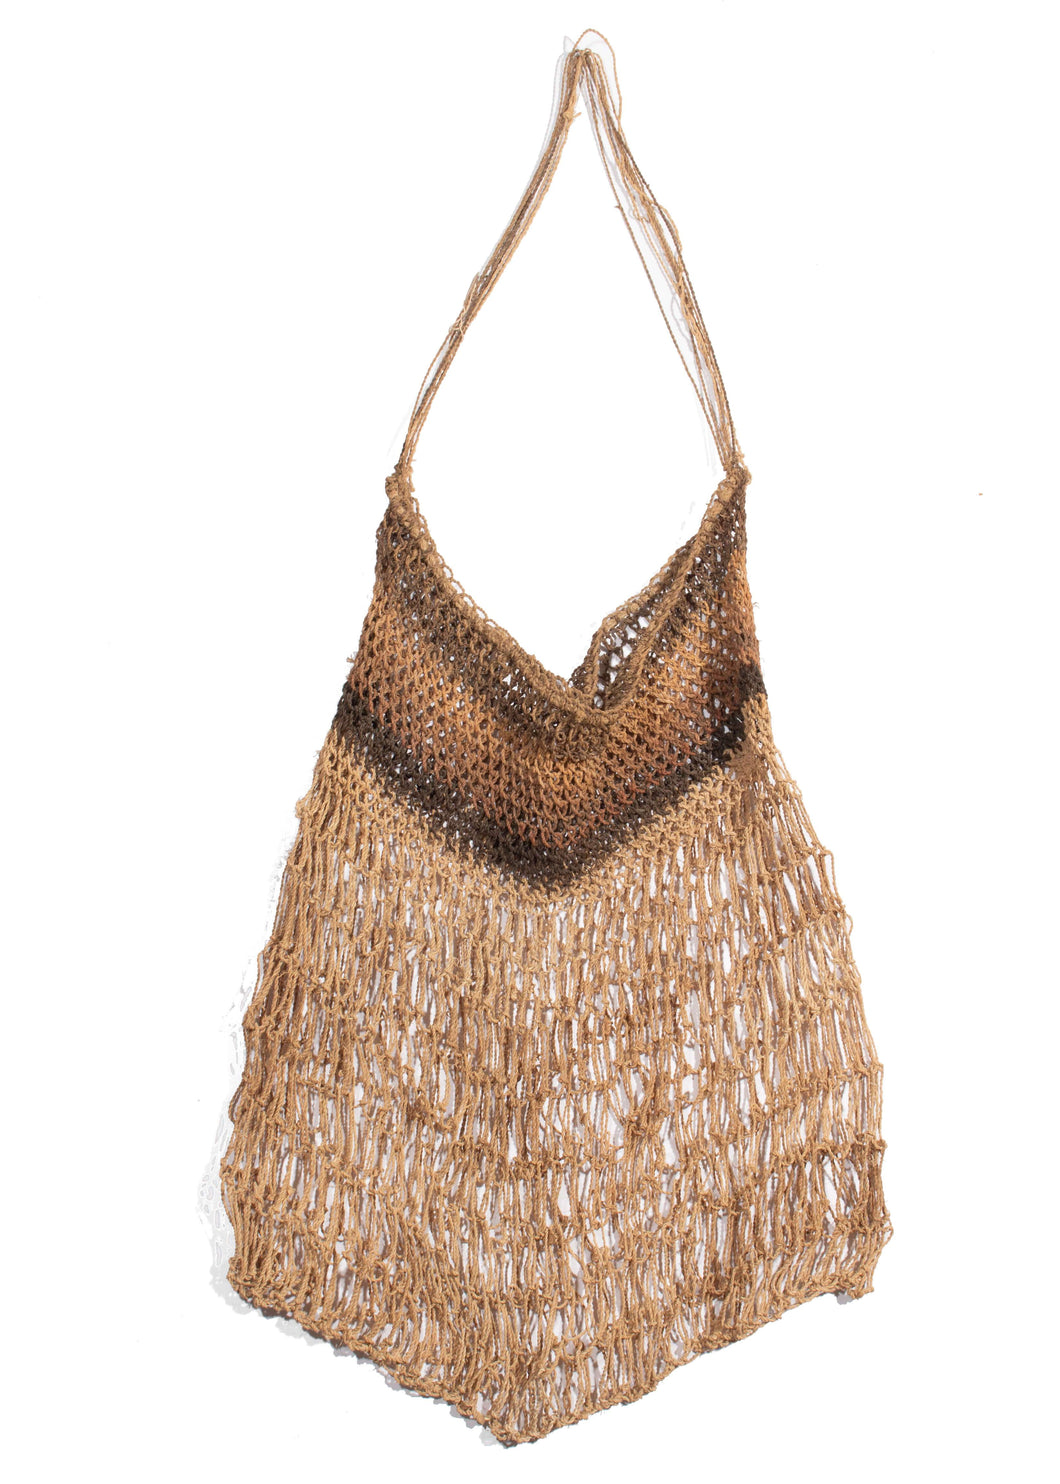 Sedge Grass Dilly Bag knotted in muted brown tones